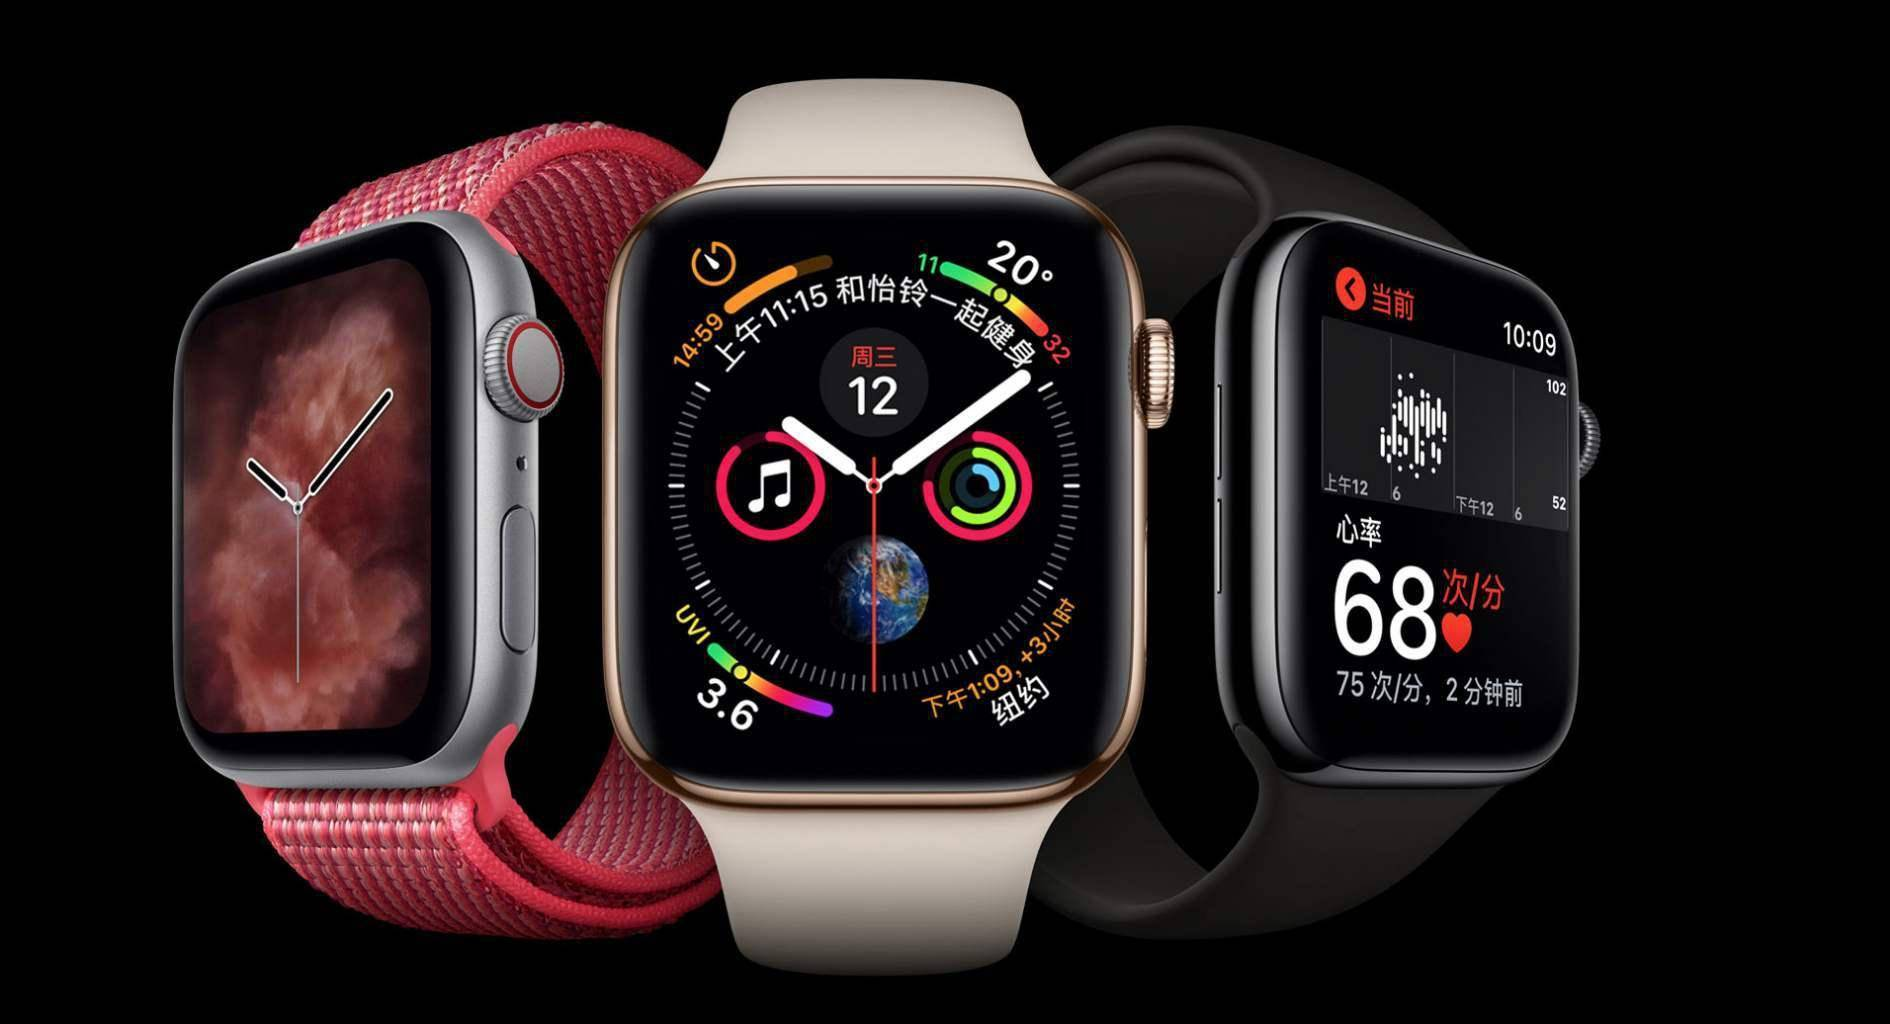 第五代Apple Watch全球下架,暗示新品今晚发布